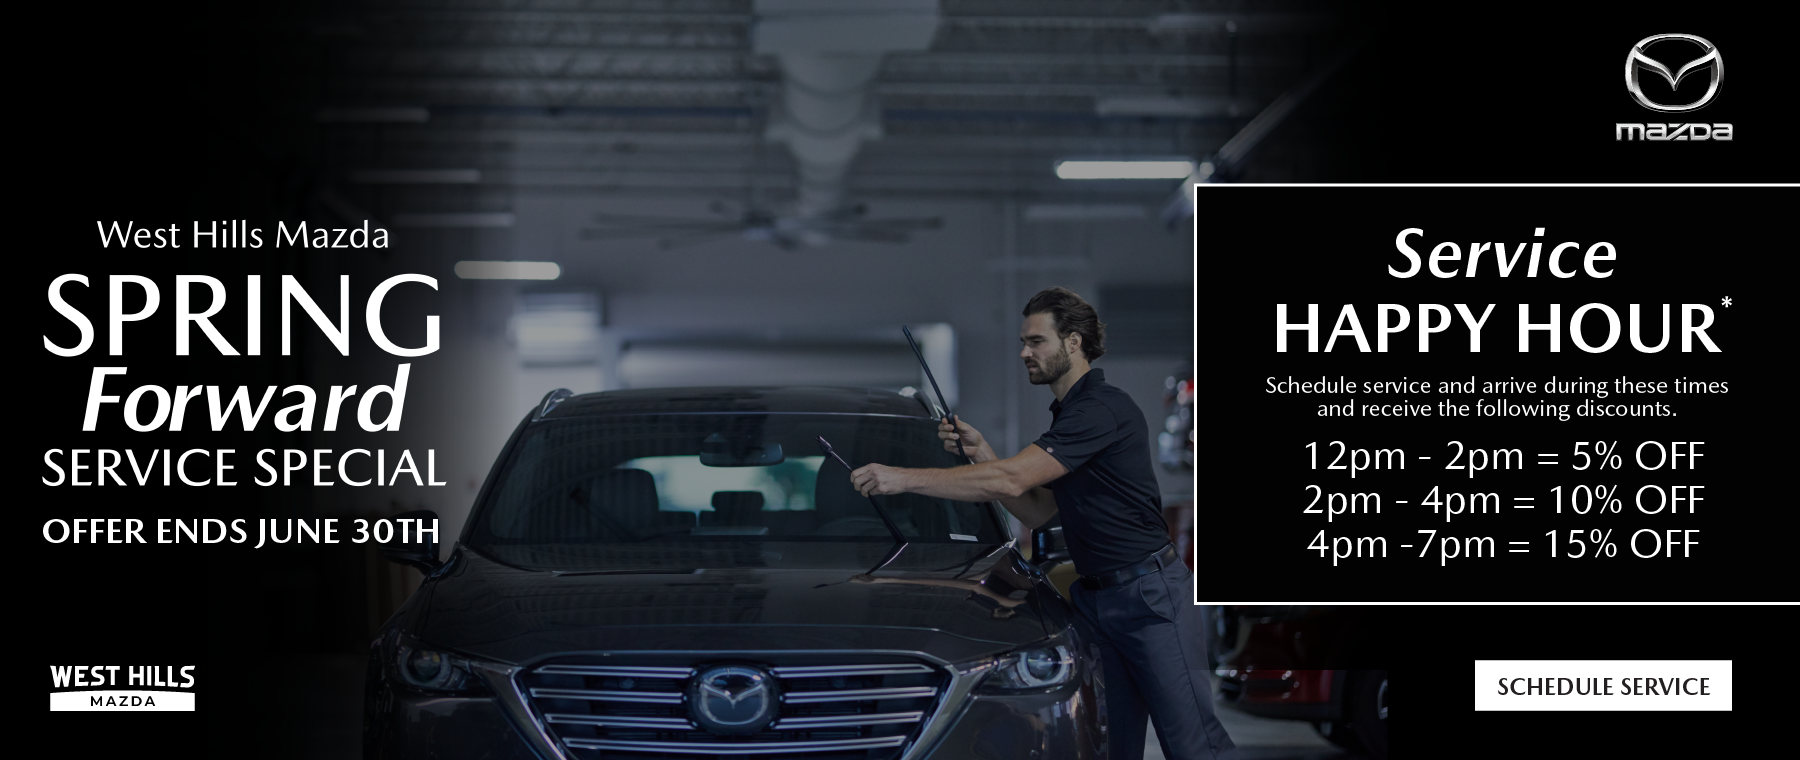 11810 – MAR21 – WHAP – Spring Forward Service Special – Webslides – Extended_Mazda – 1800×760